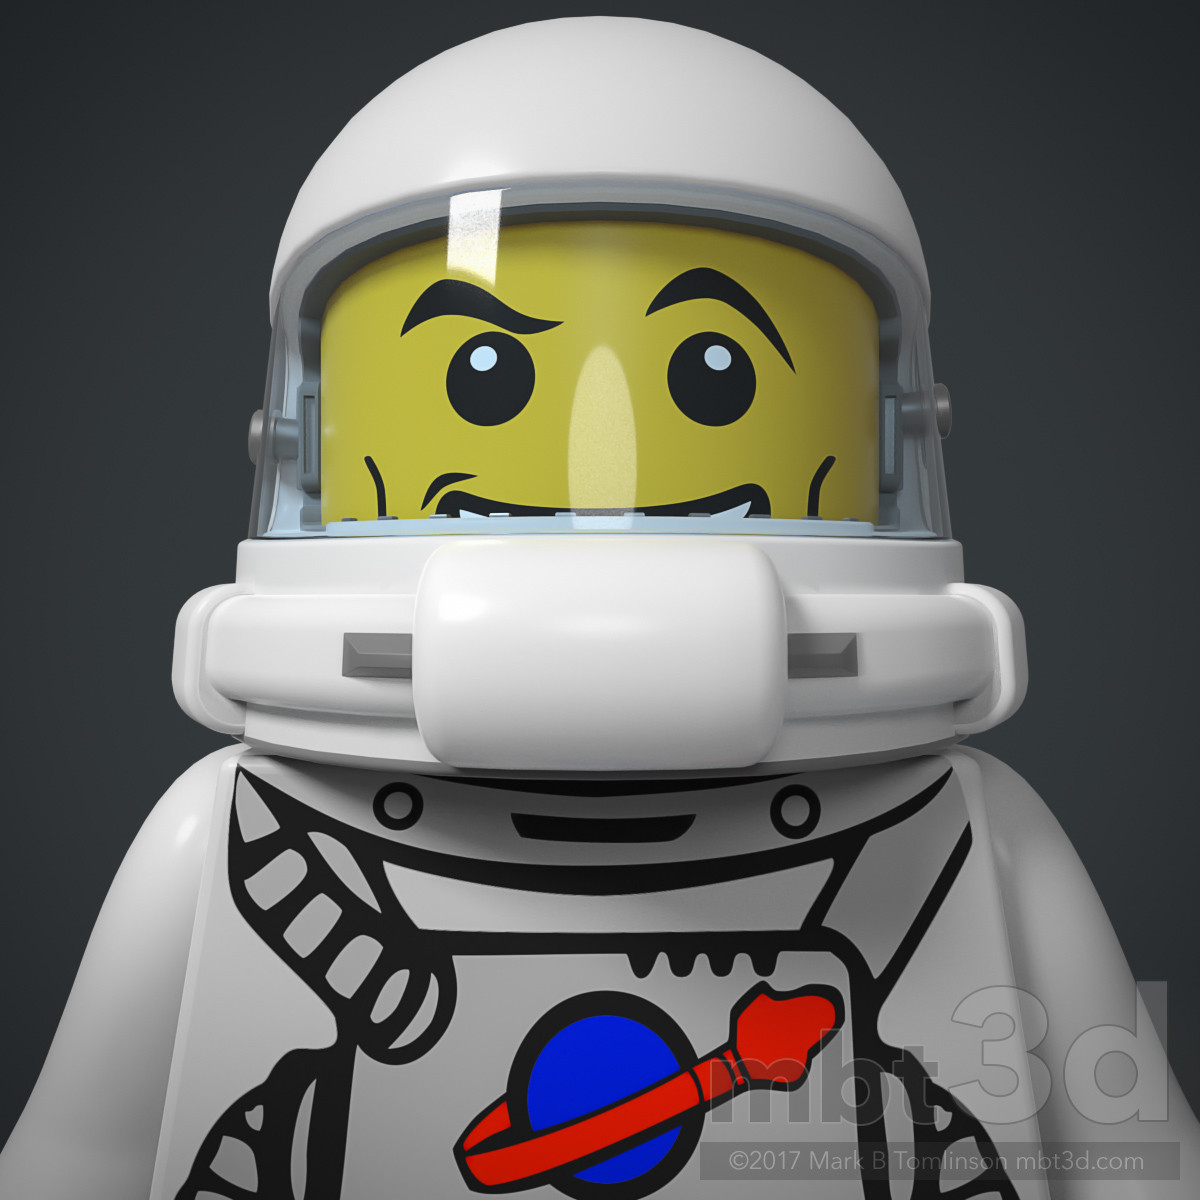 Spaceman Minifigure